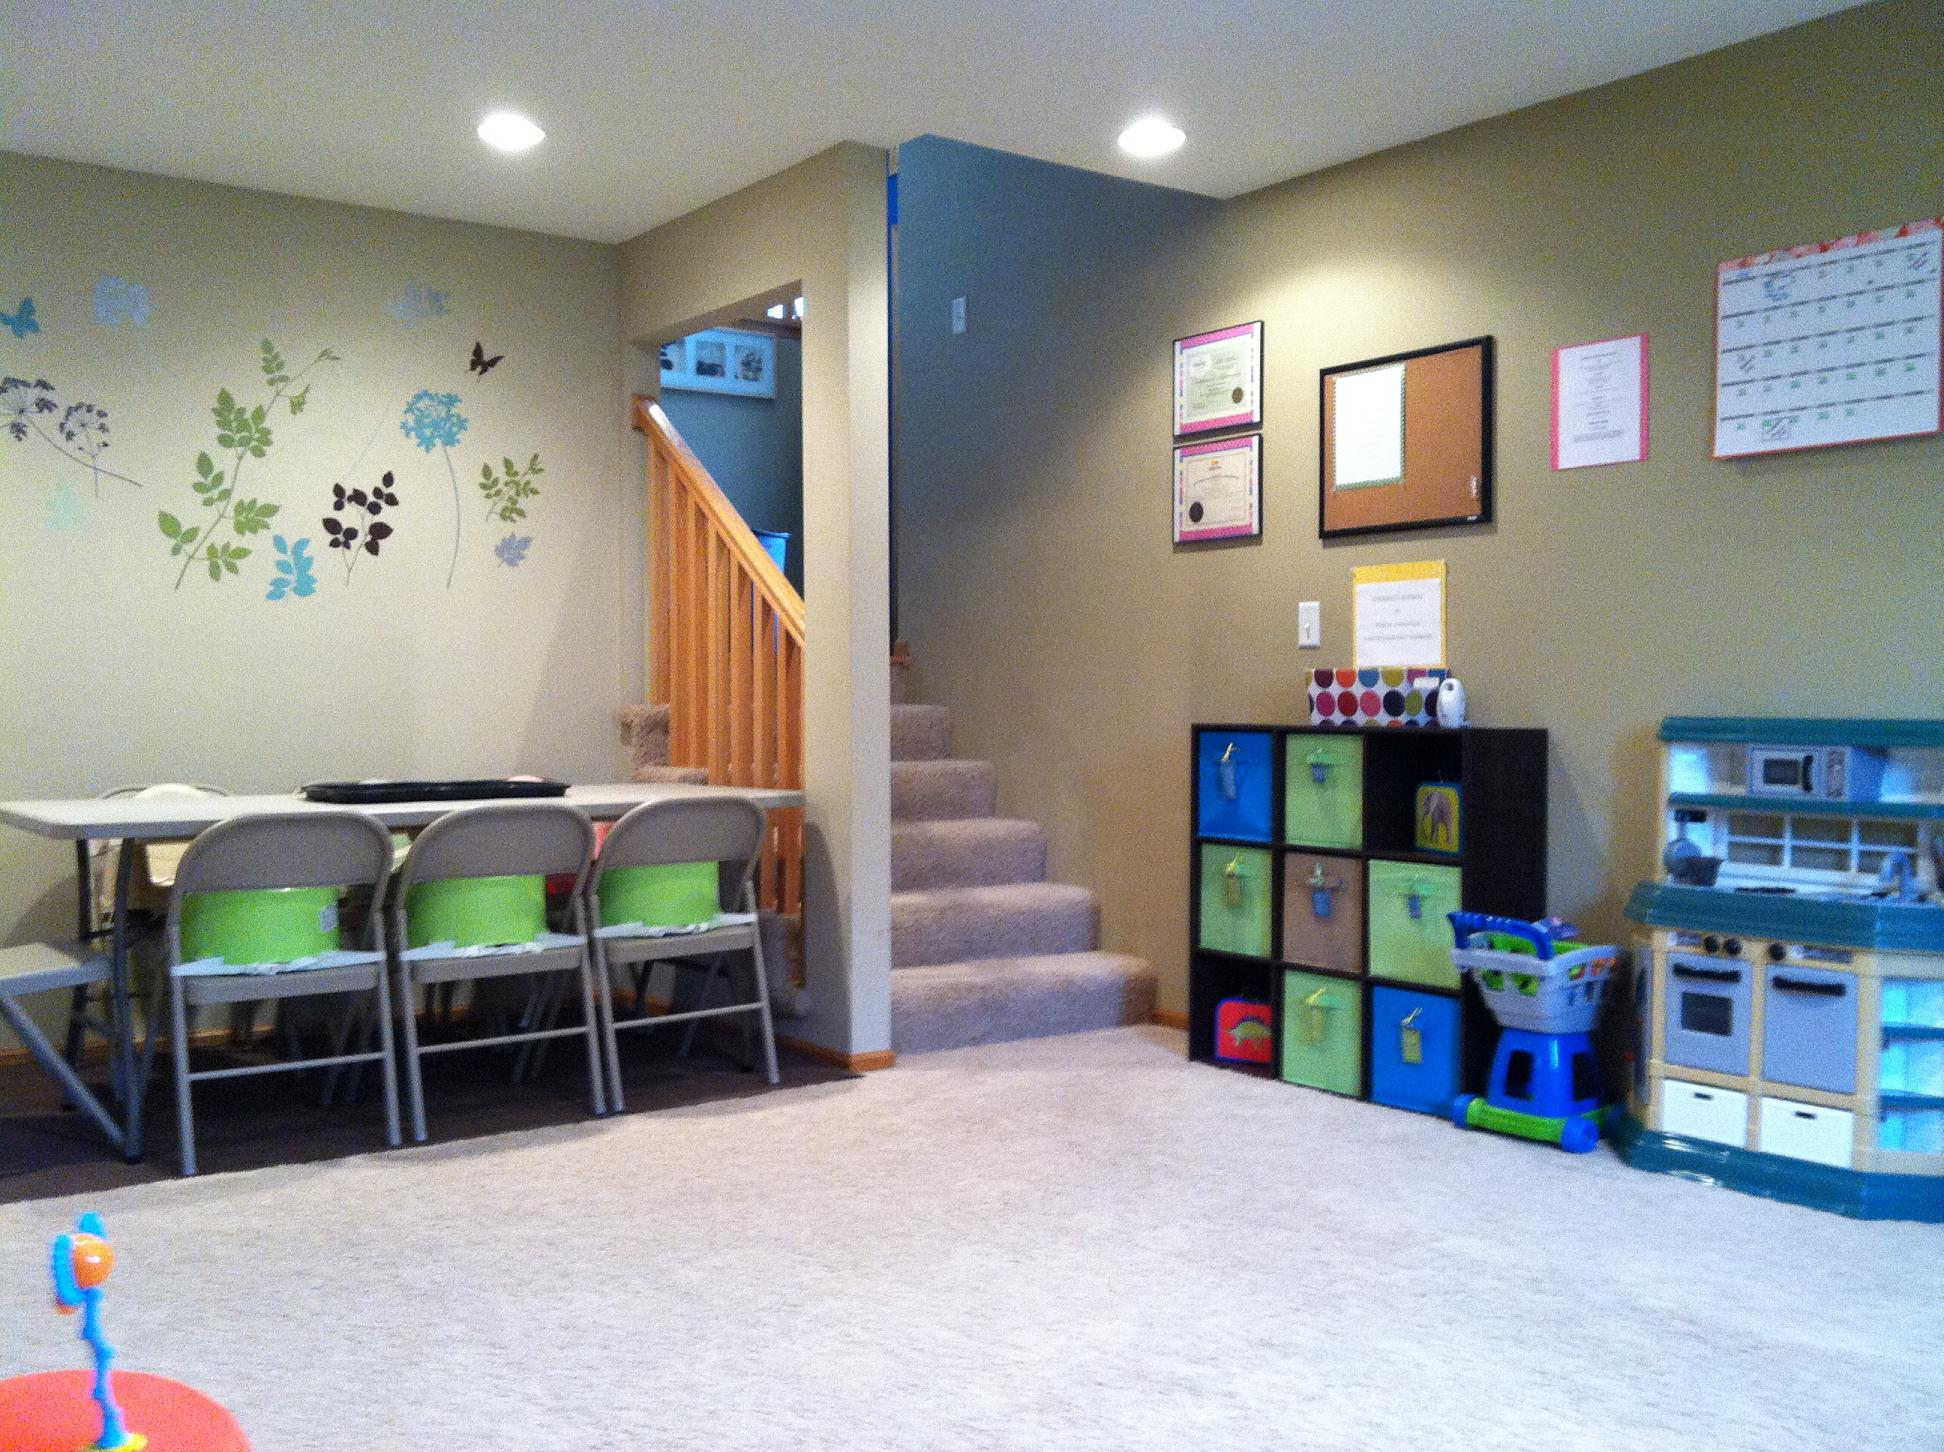 1000 Images About Home Daycare Ideas On Pinterest Classroom San Jose And Home Daycare Rooms